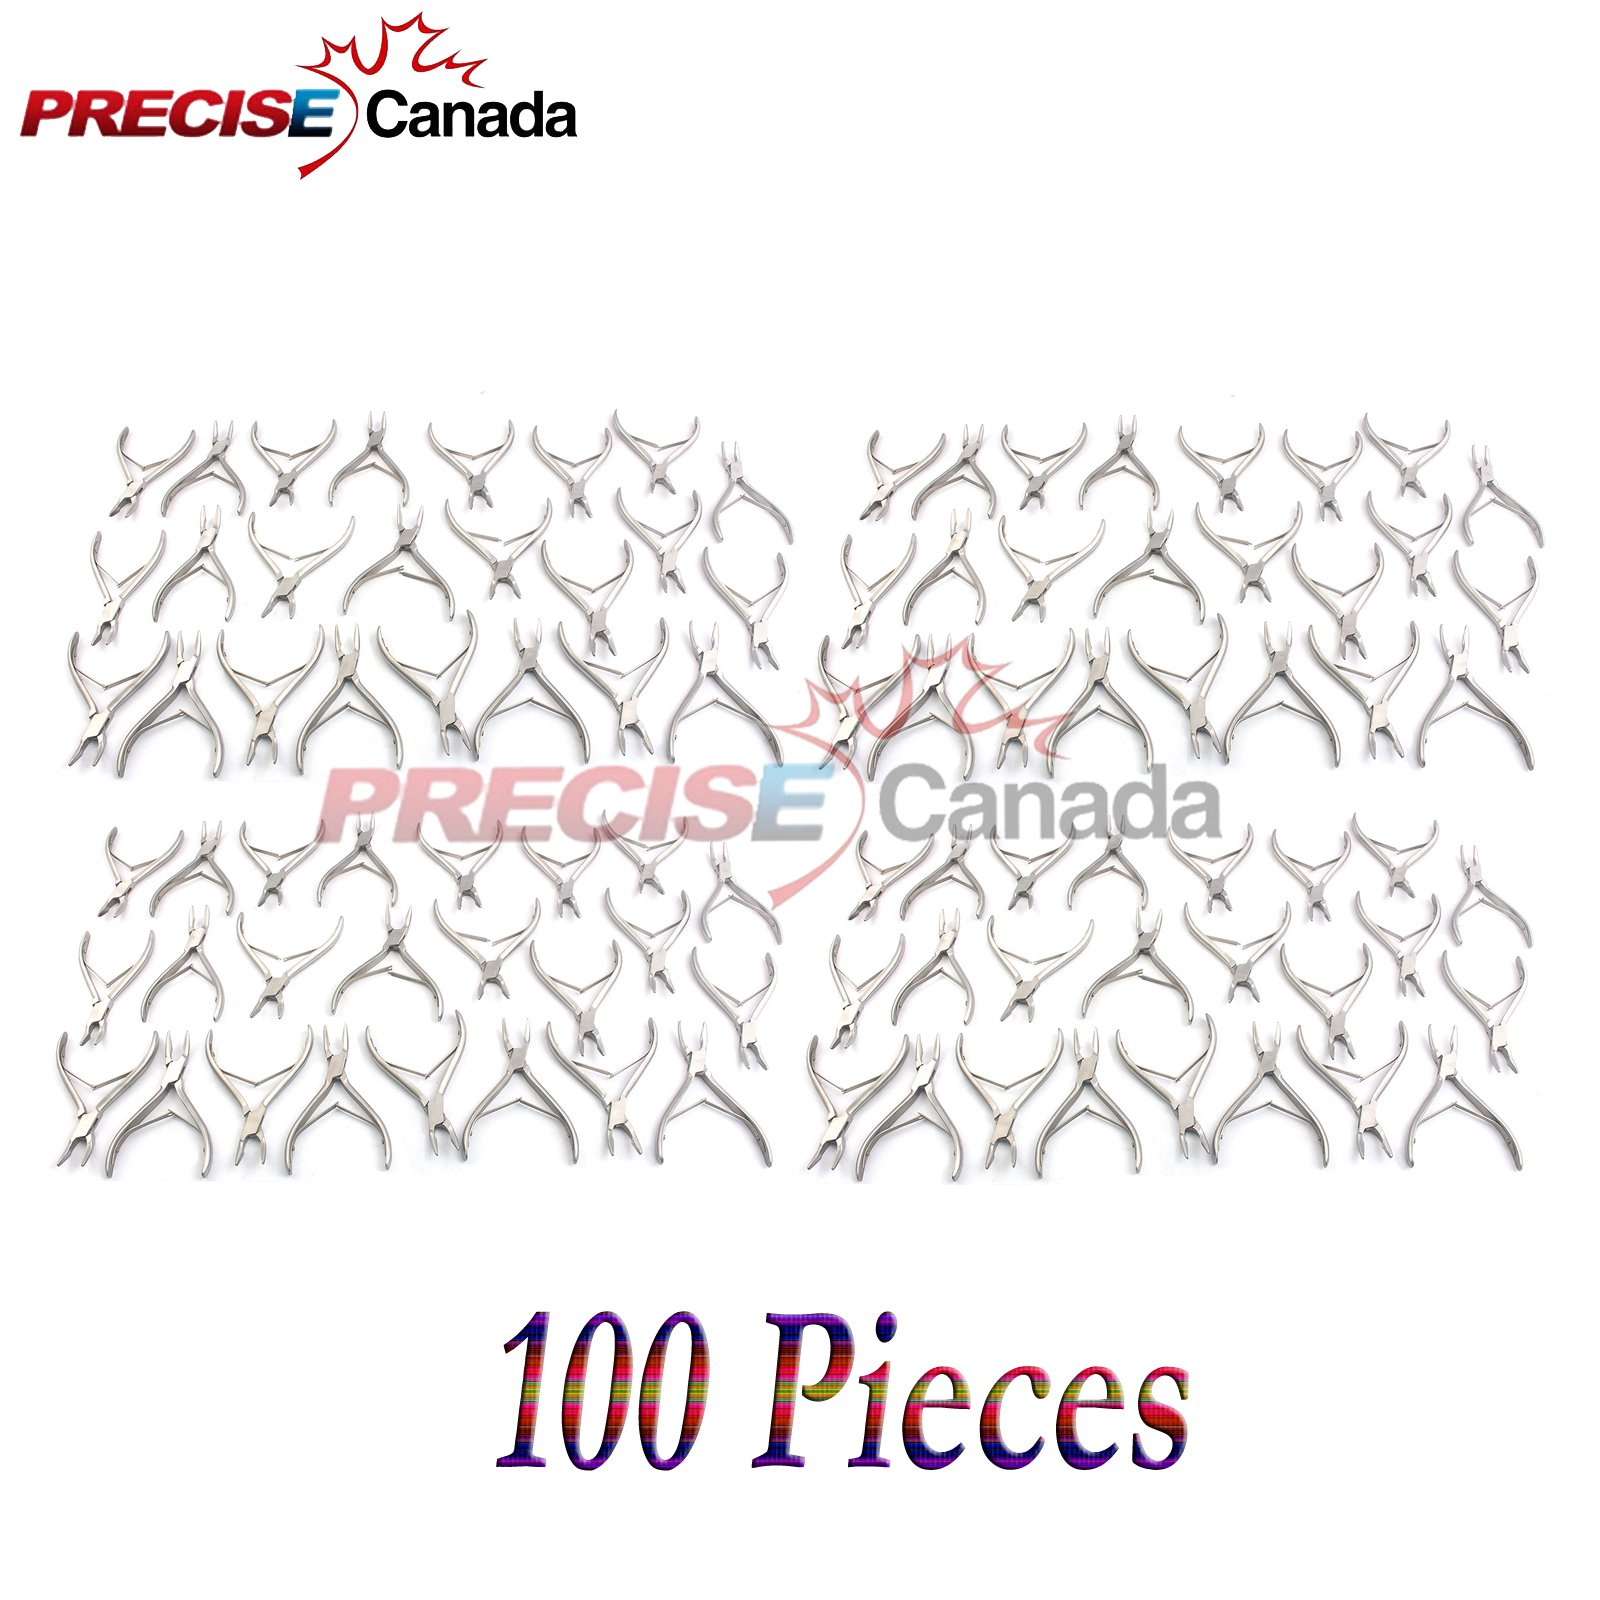 PRECISE CANADA: 100 PIECES MEAD RONGUER 5.5'' ORTHOPEDIC INSTRUMENTS